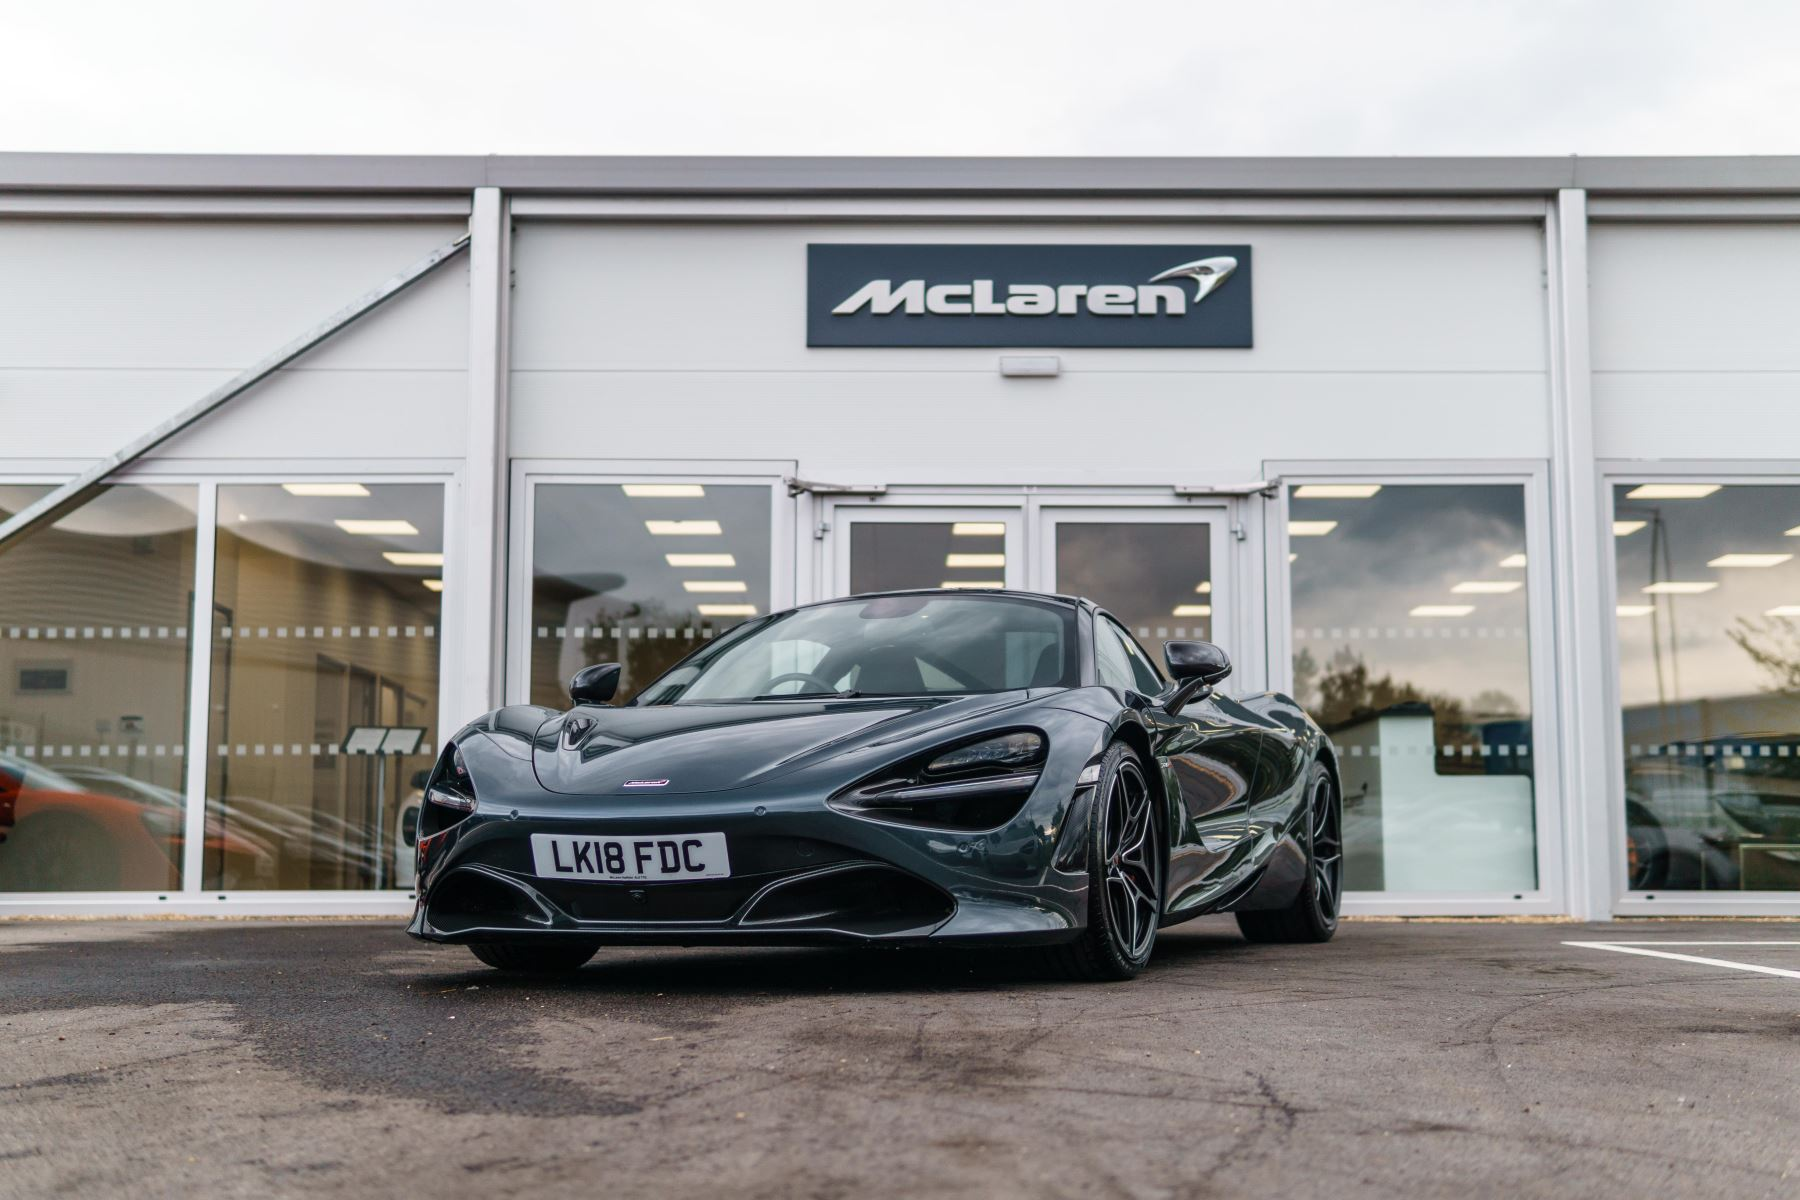 McLaren 720S Performance V8 Coupe SSG 4.0 Automatic 2 door (2018) image